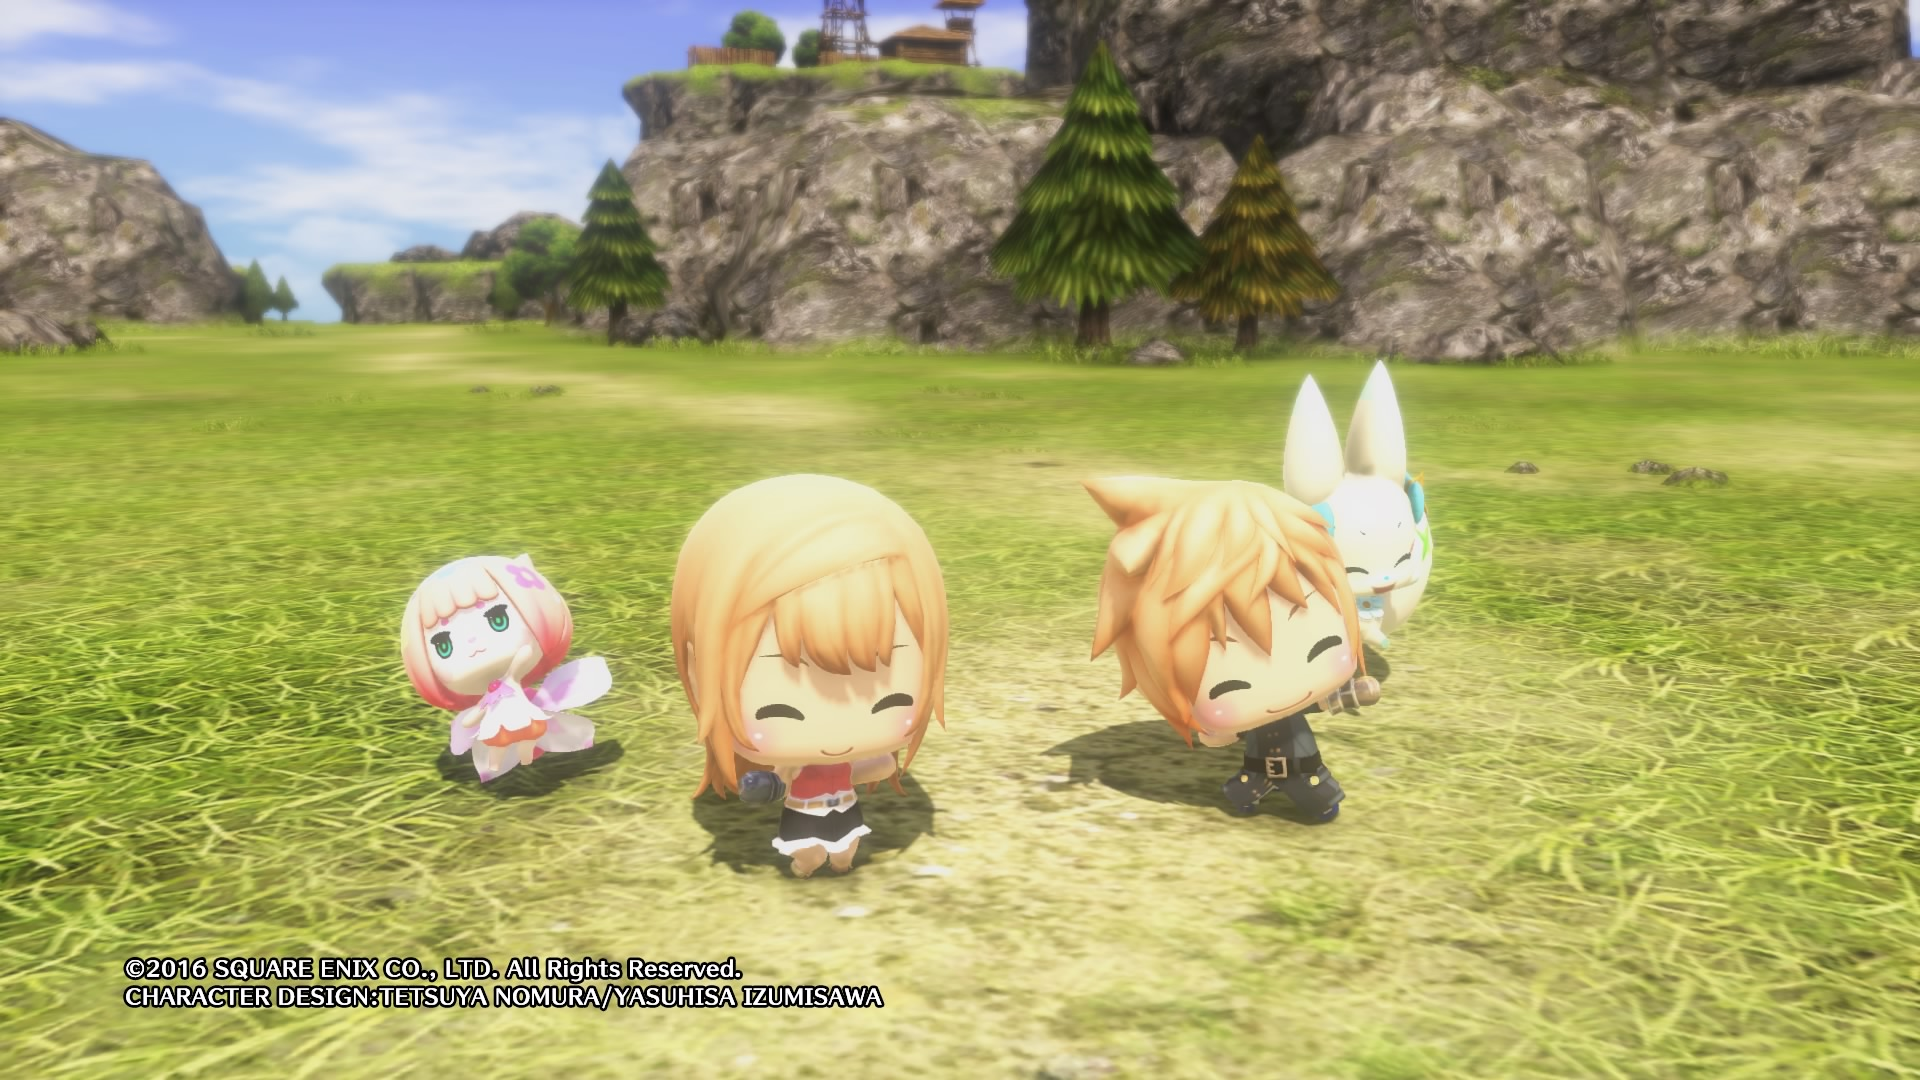 WORLD OF FINAL FANTASY Dungeon 1